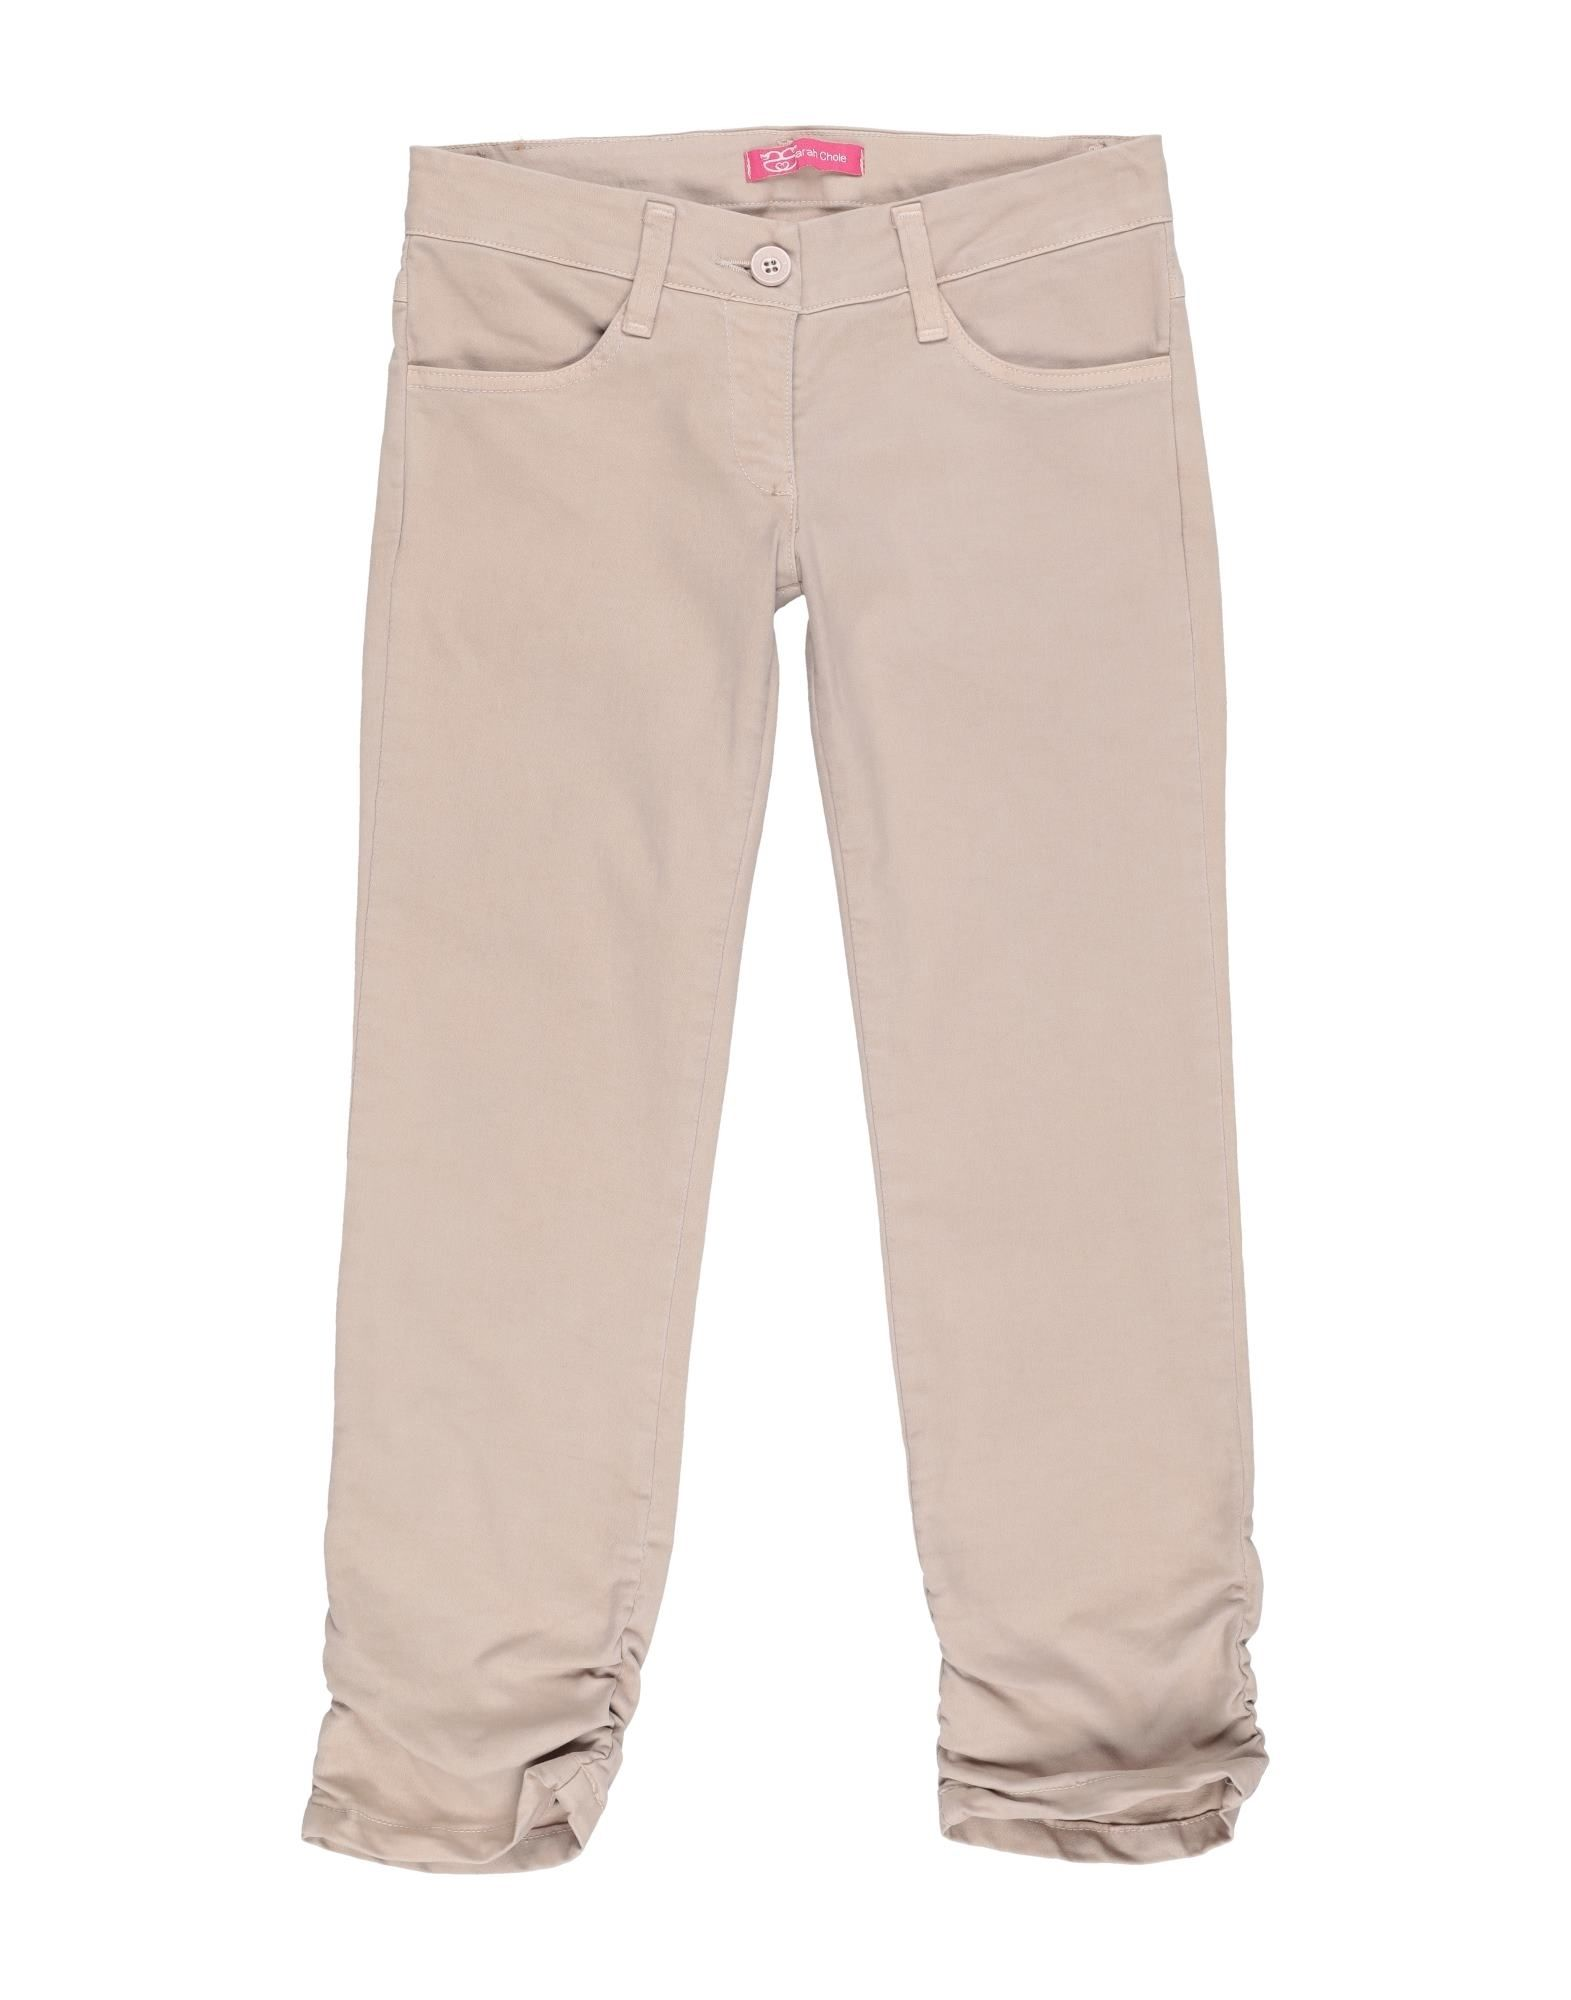 Sarah Chole Kids' Casual Pants In Neutrals